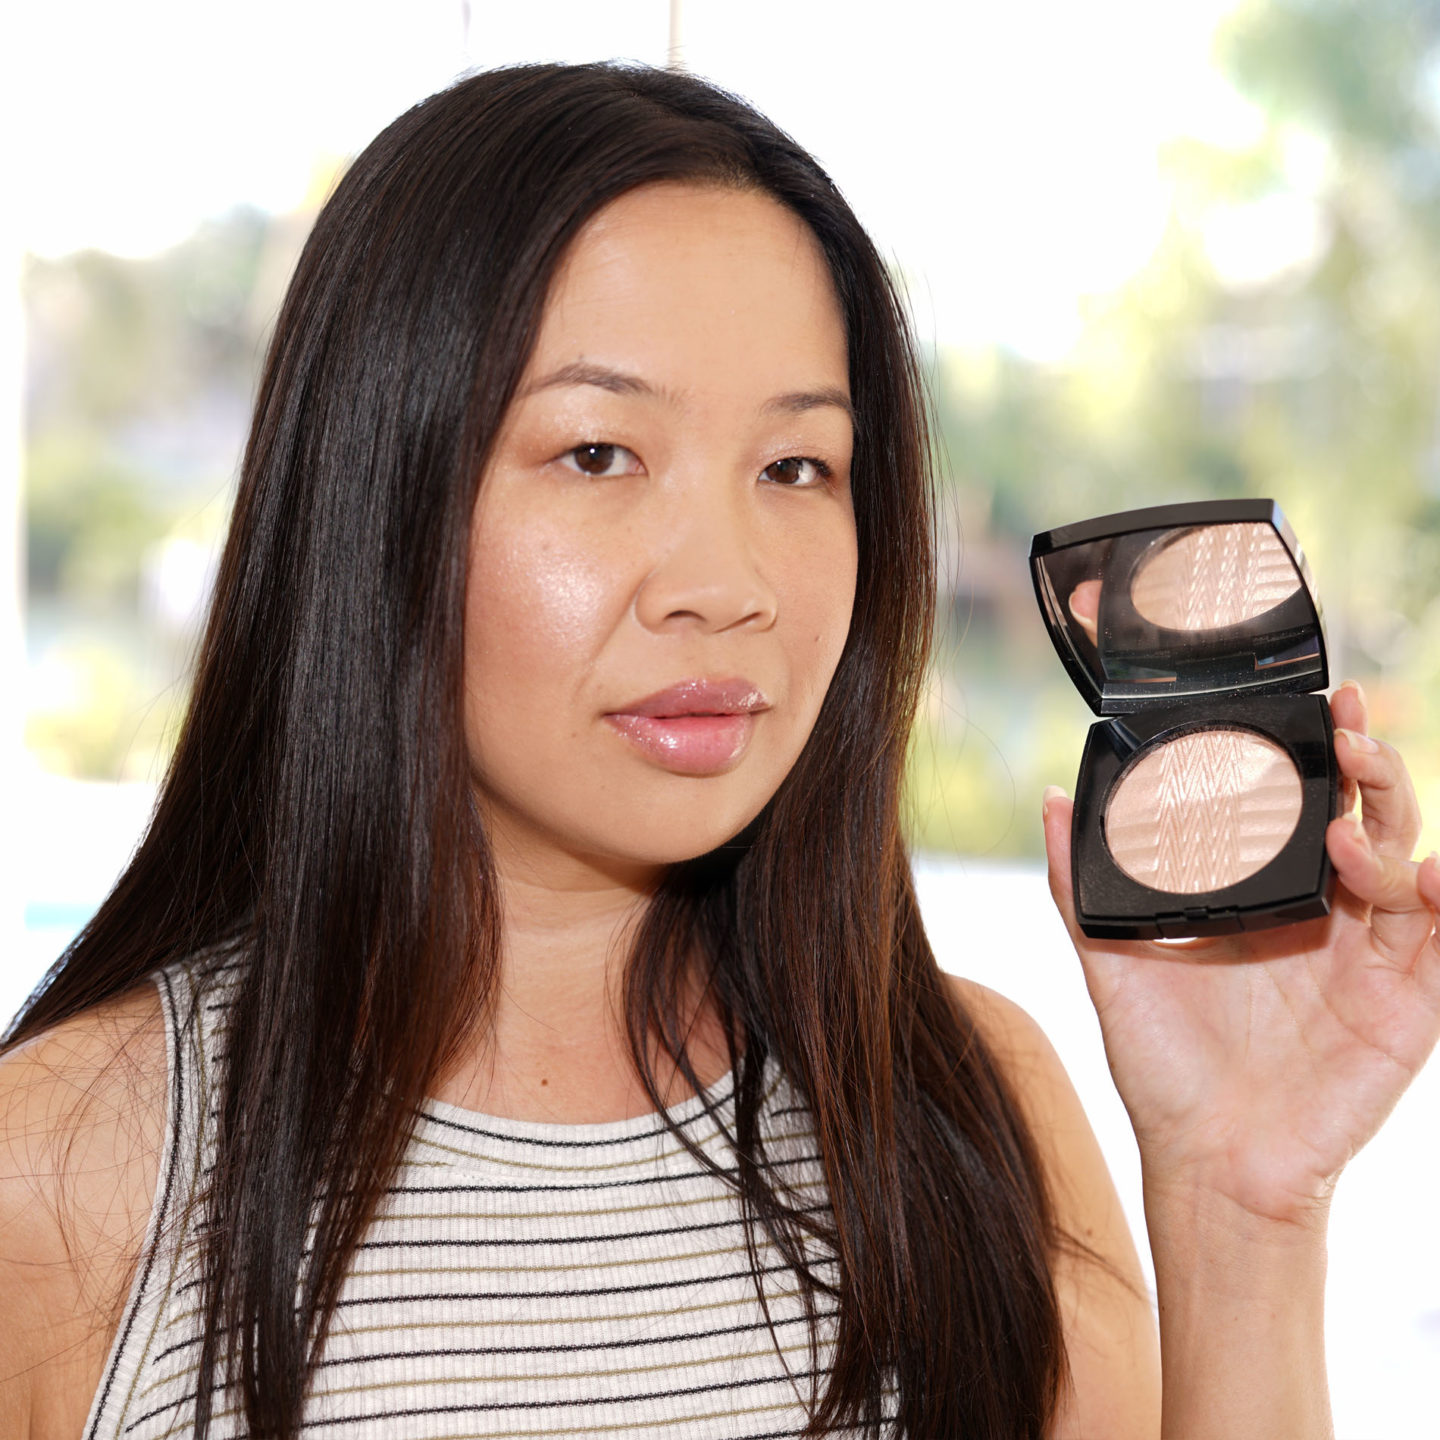 Chanel Plissee Lumiere de Chanel Highlighter | The Beauty Look Book